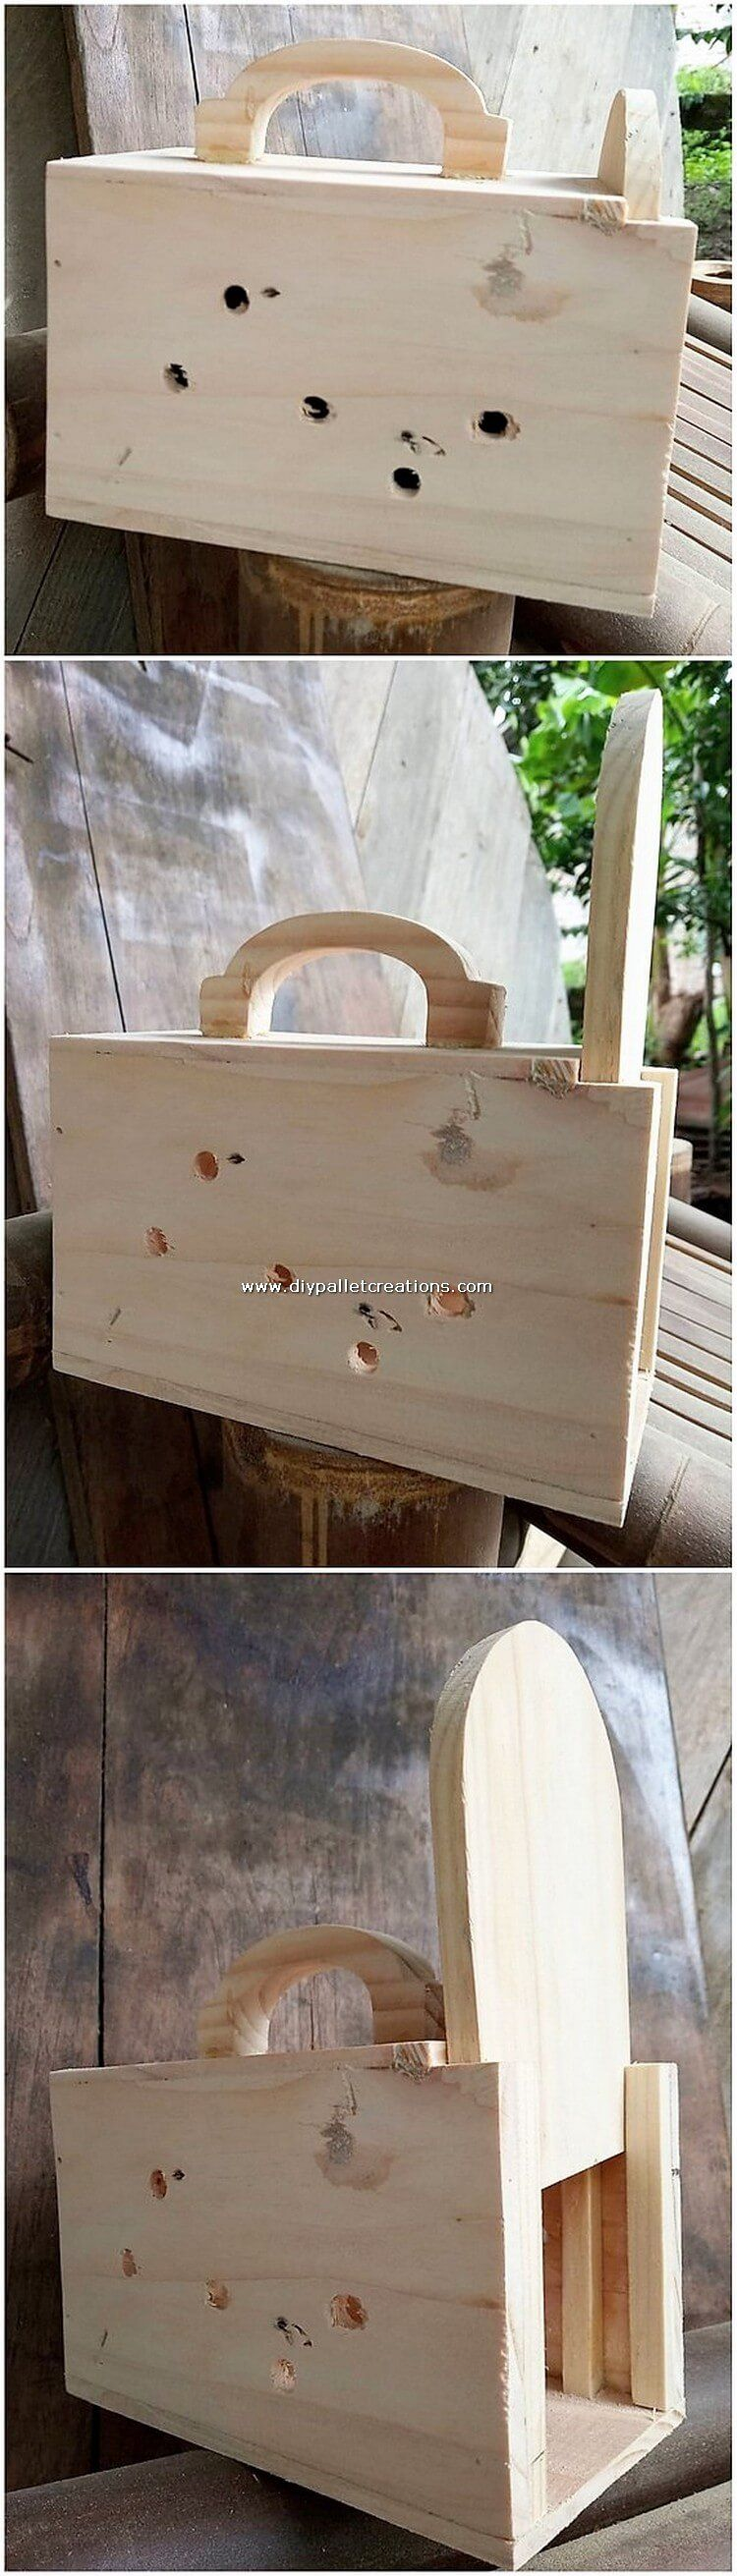 Enchanting DIY Wood Pallet Creations 2019 #oldpalletsforcrafting